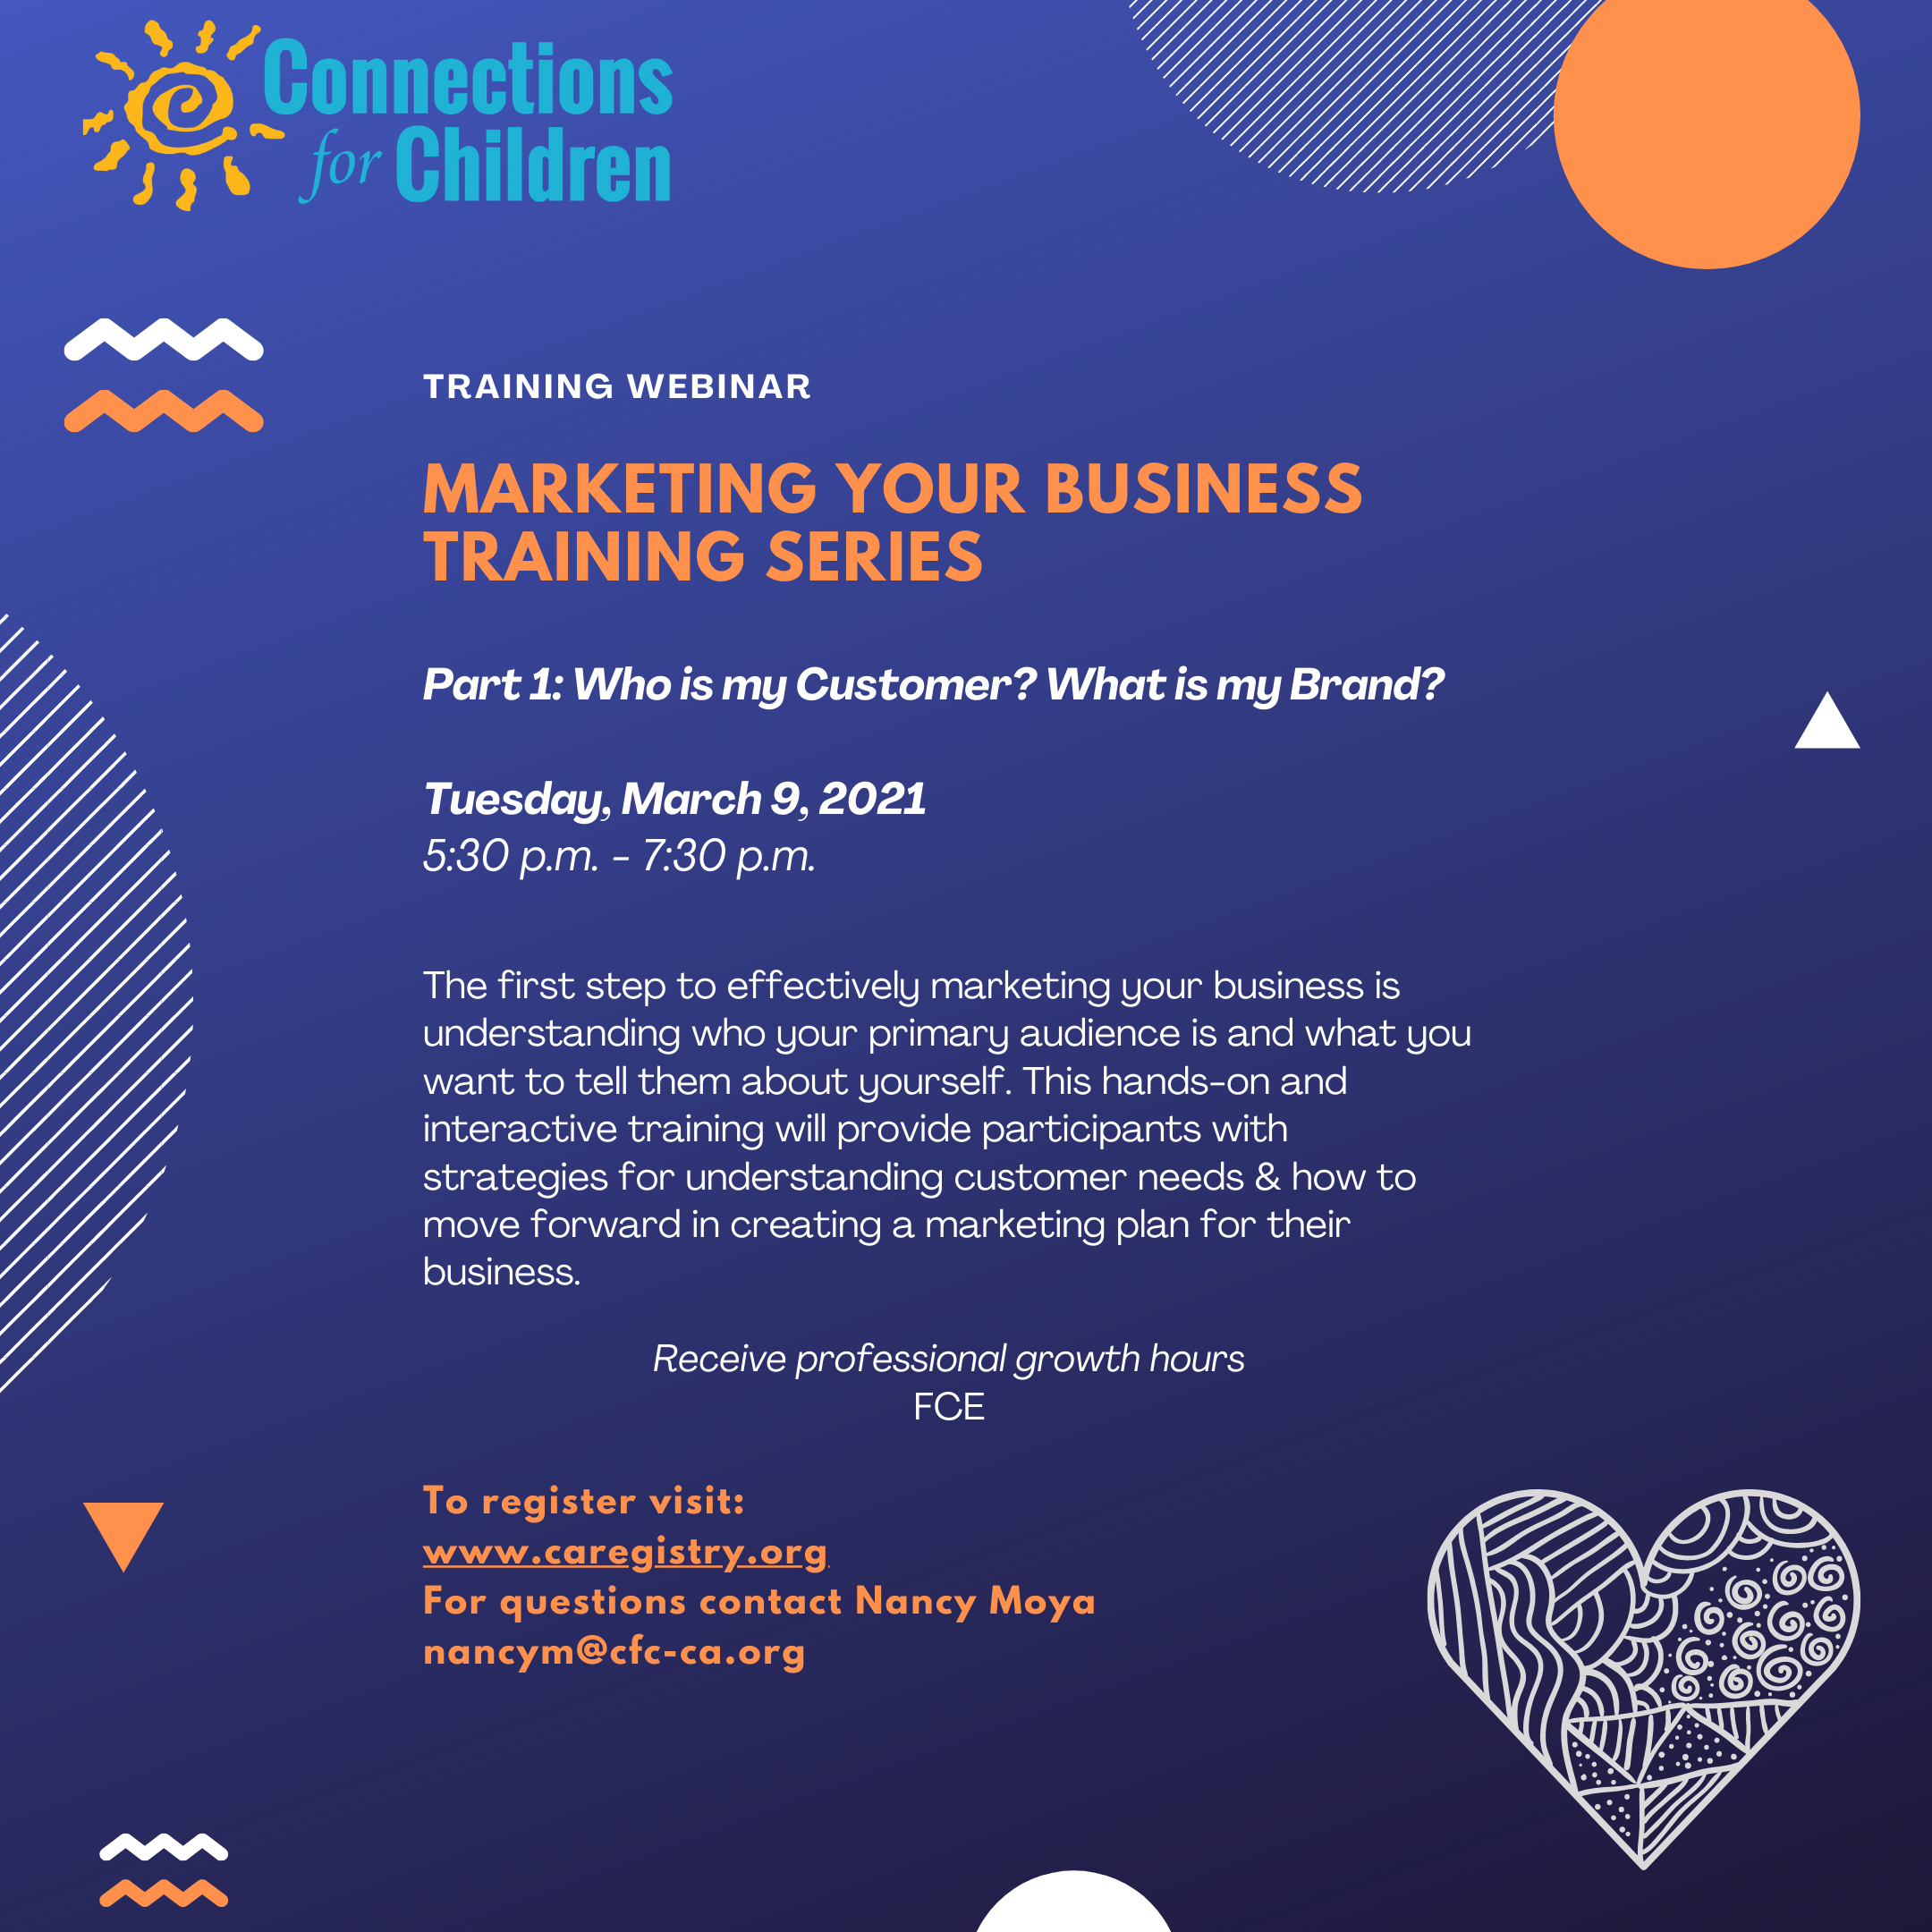 Marketing Your Business Series Part 1: Who Is my Customer? What is my Brand?